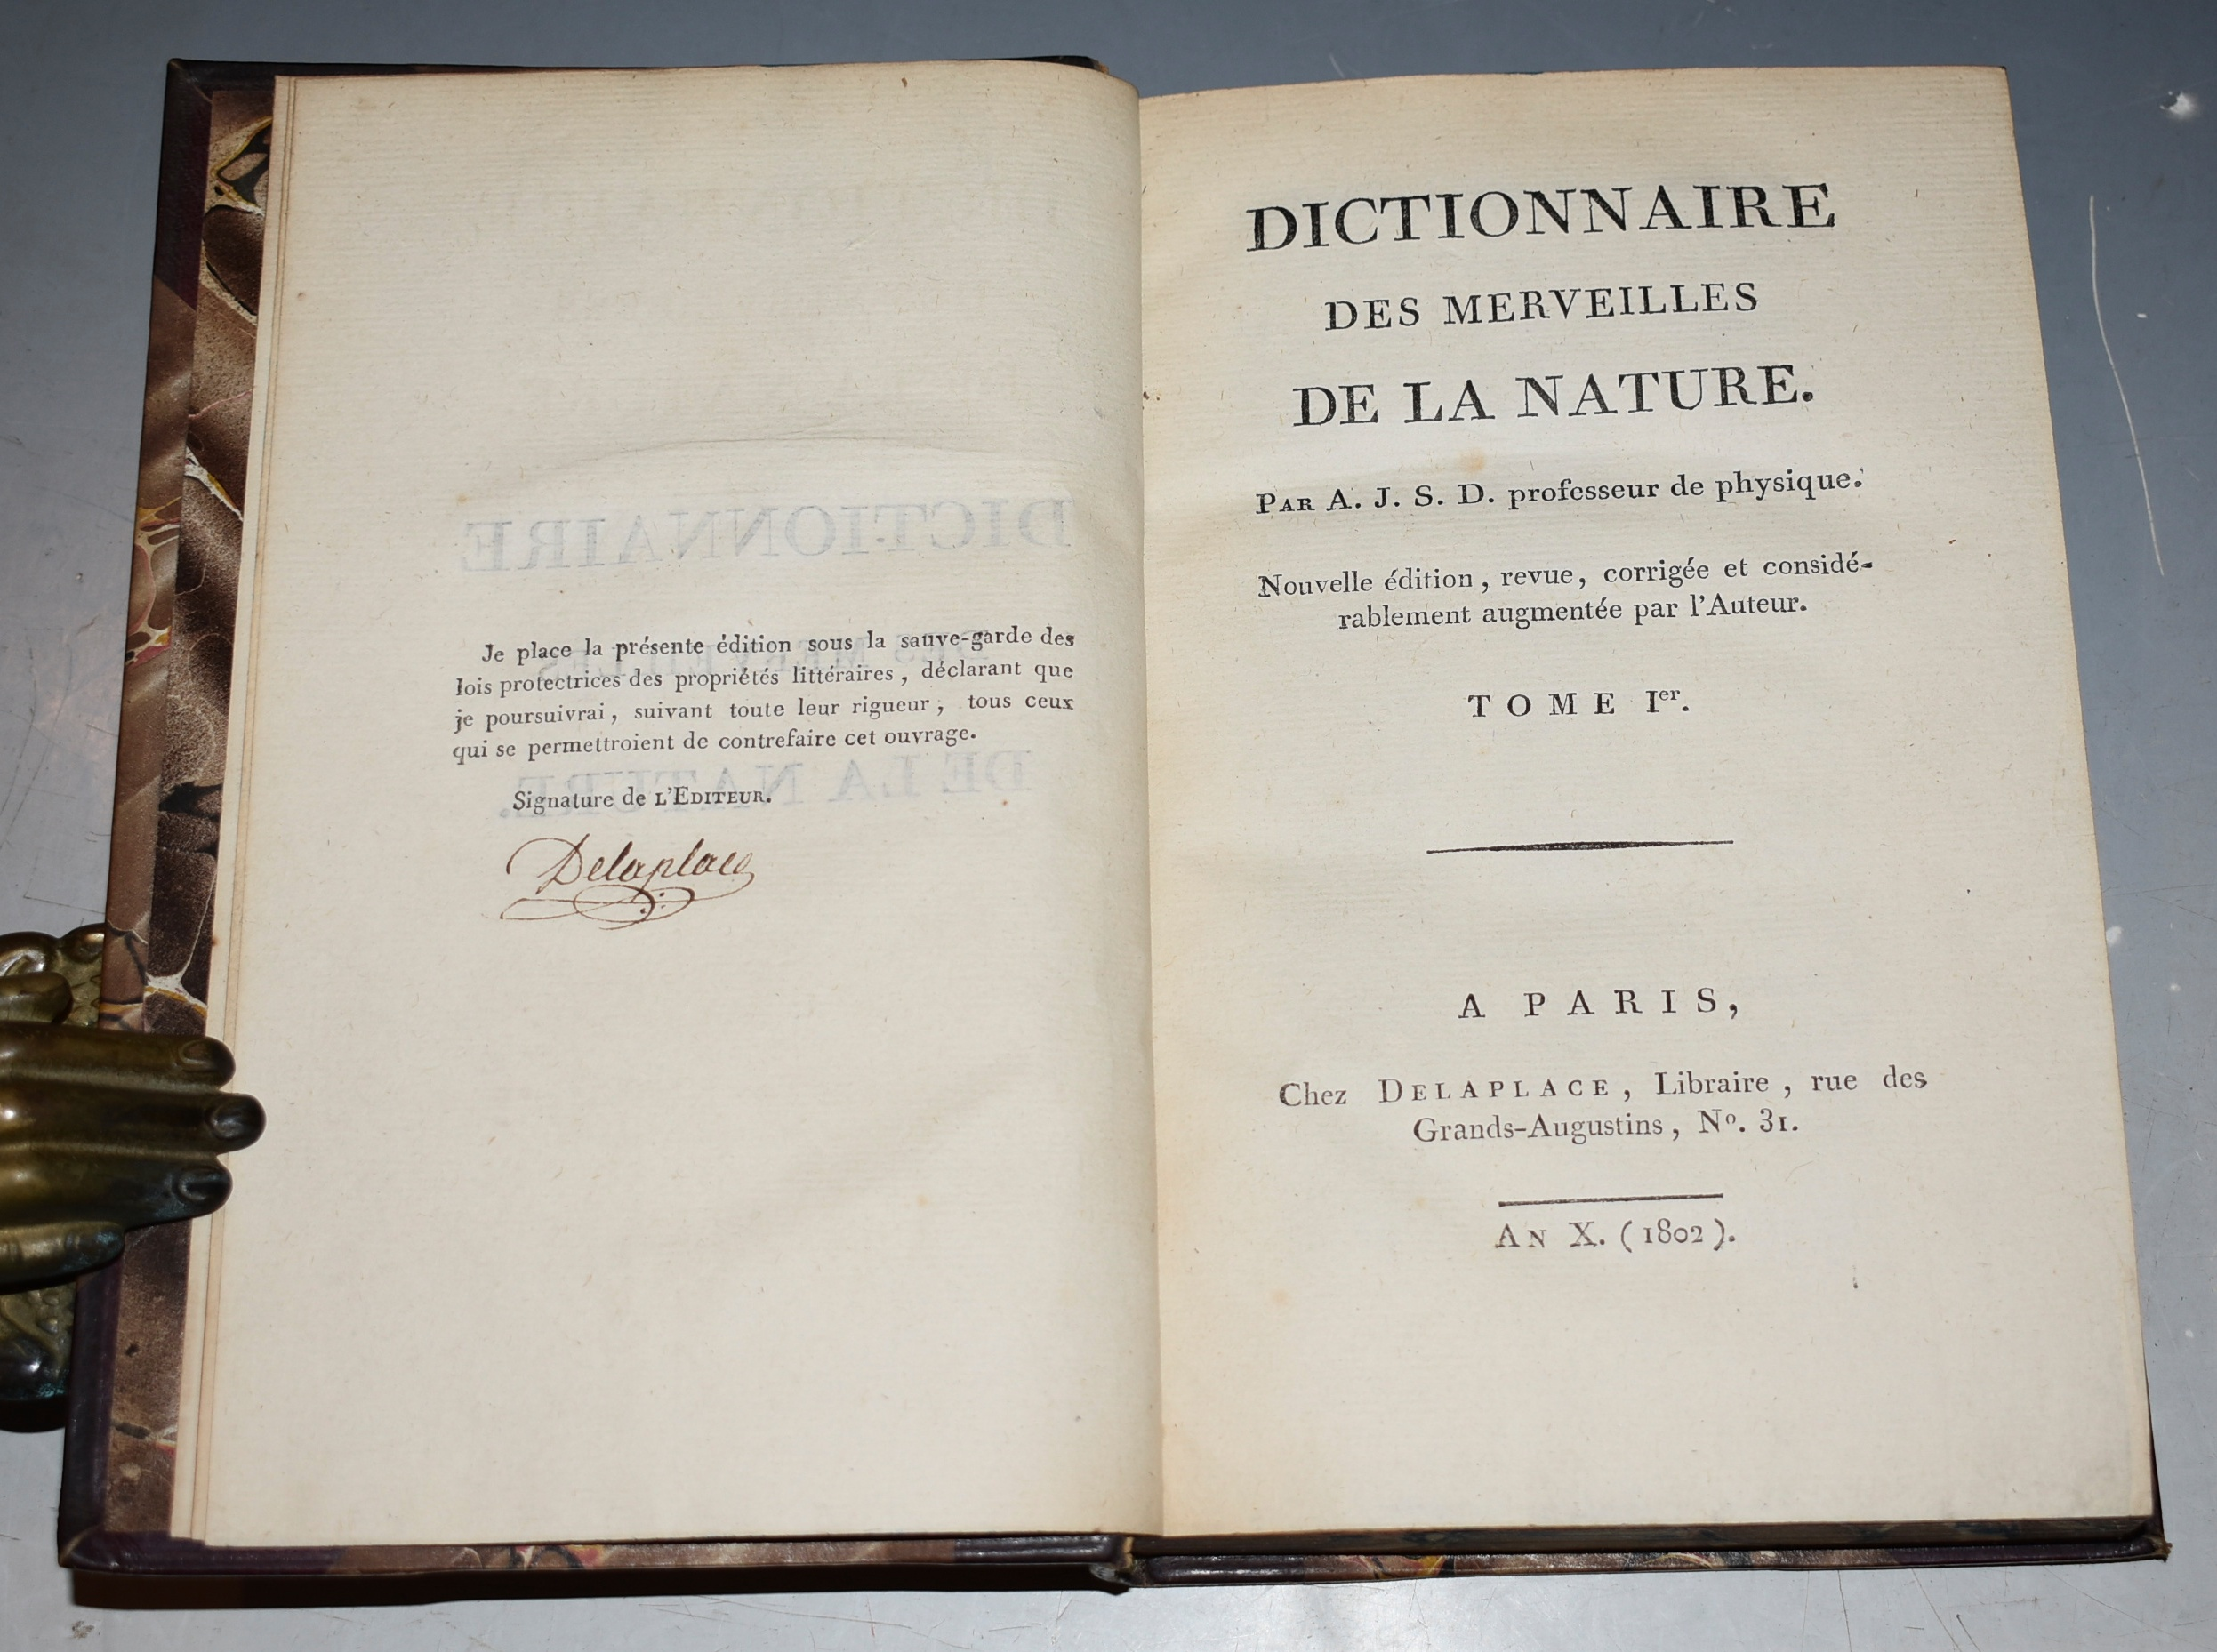 Image for Dictionnaire Des Merveilles de la Nature. Nouvelle edition, revue, corrigee et considerablement augmentee par l'Auteur. (Dictionary of Wonders of Nature.  New edition, revised, corrected and considerably increased by the Author.) In Three Volumes. SIGNED.